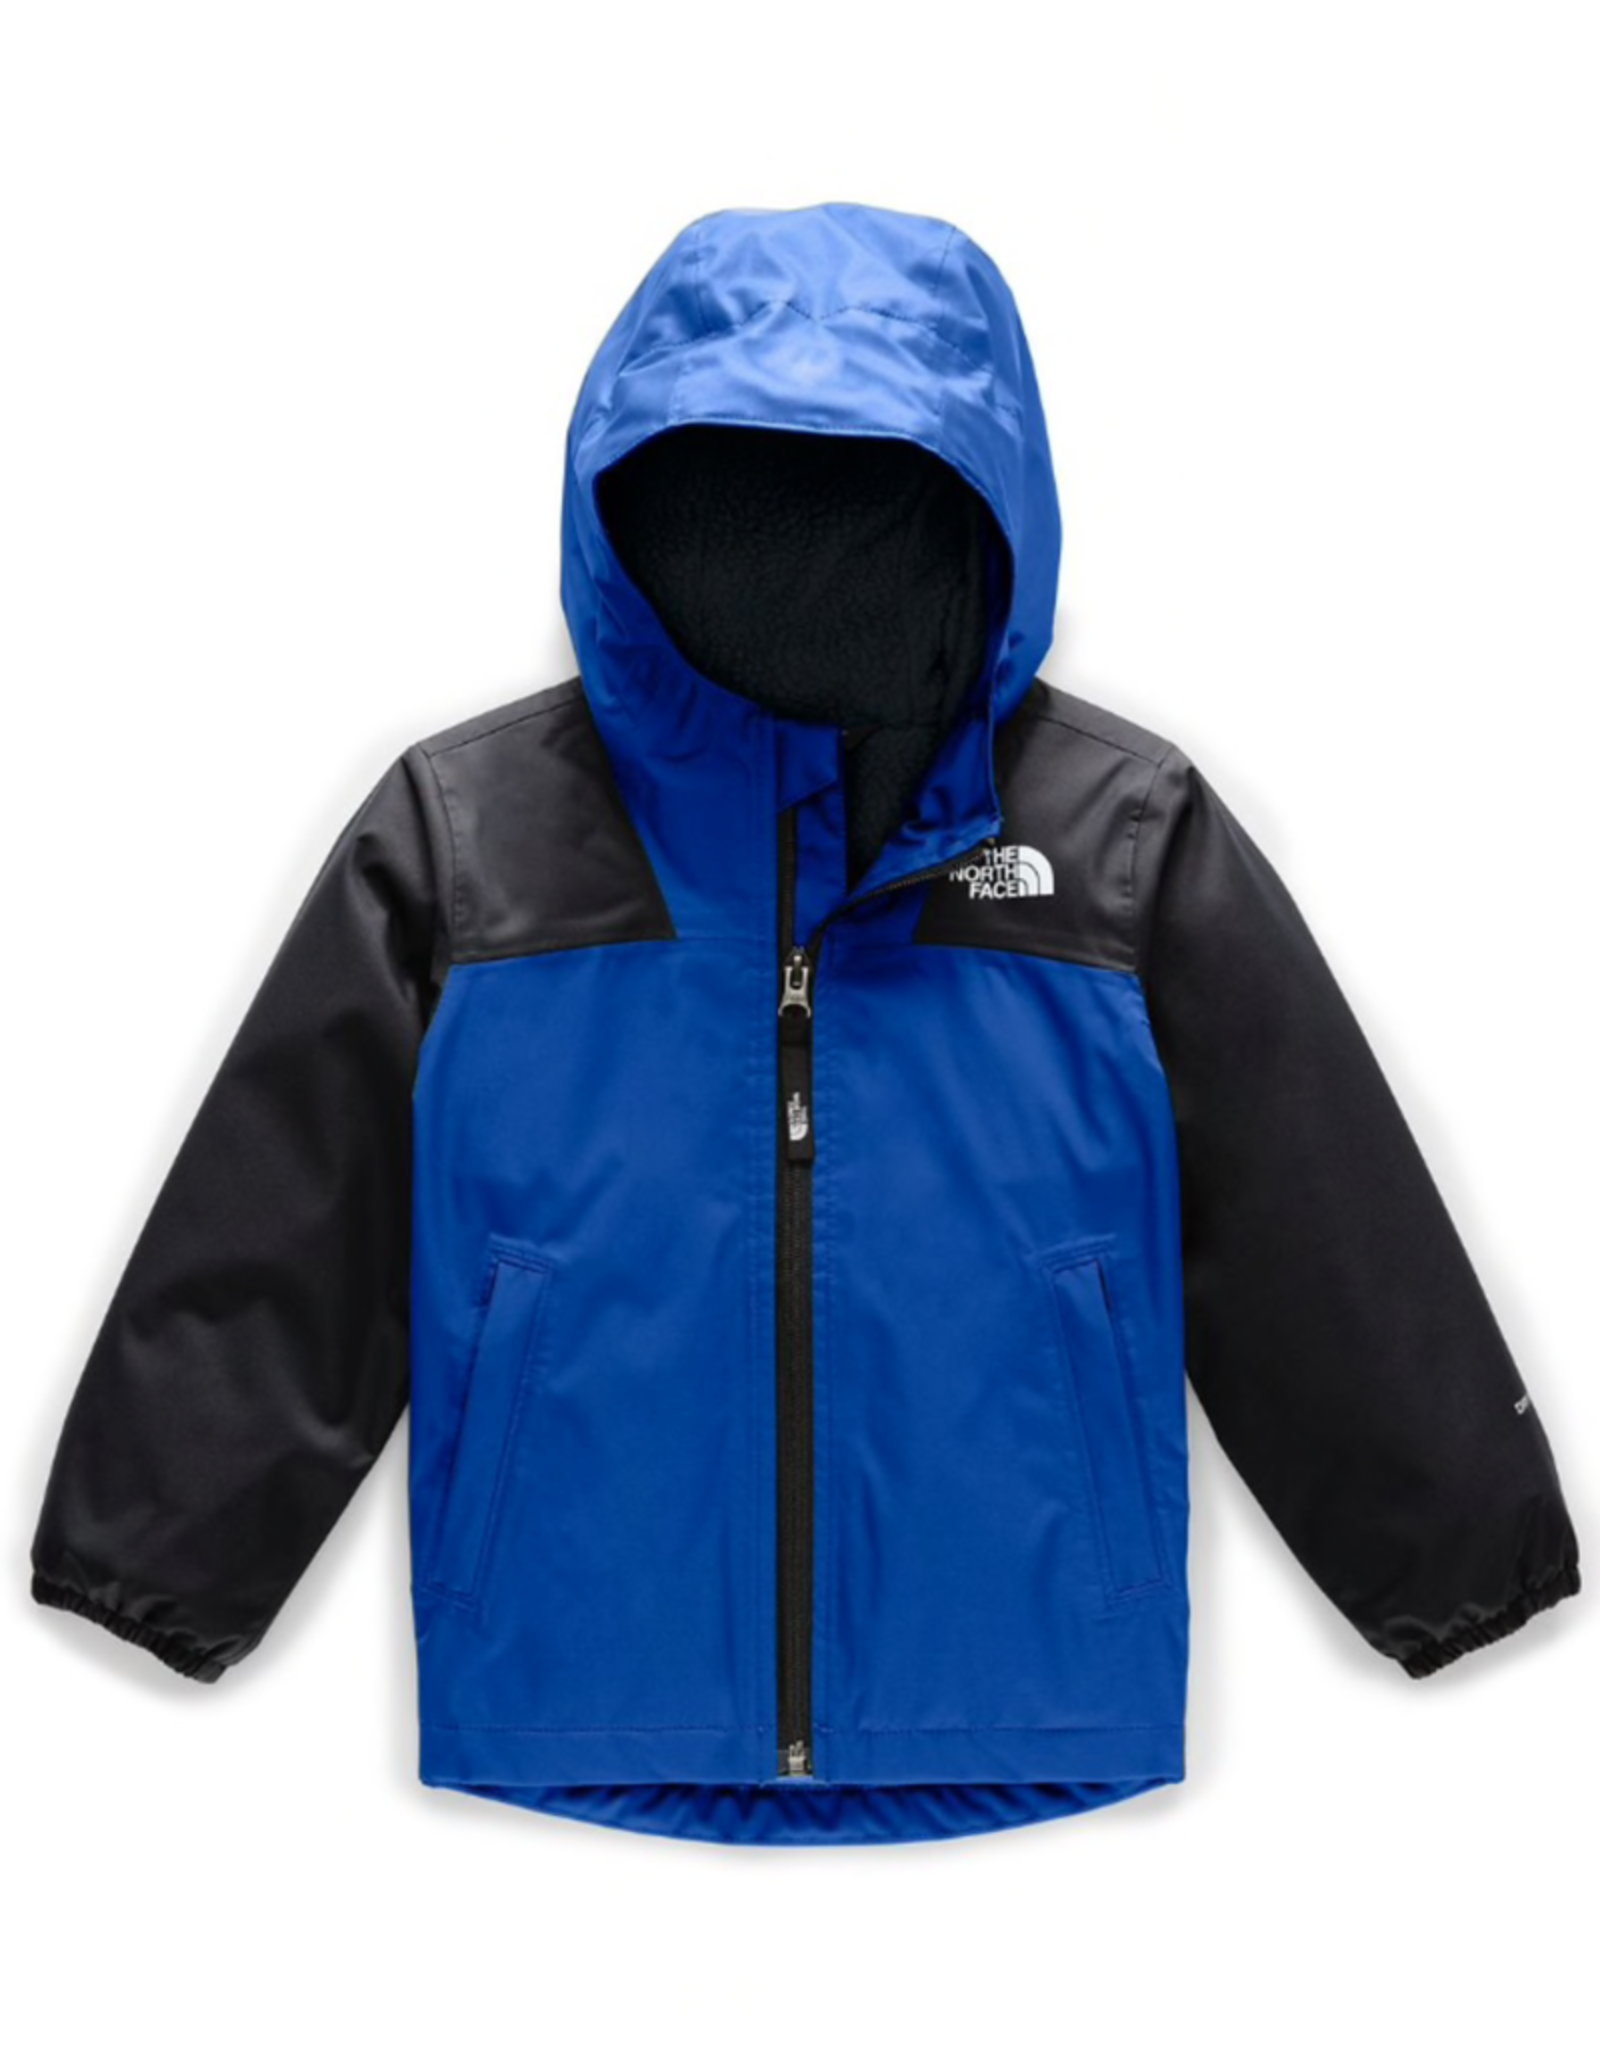 The North Face Boys' Toddler Warm Storm Jacket in TNF Blue